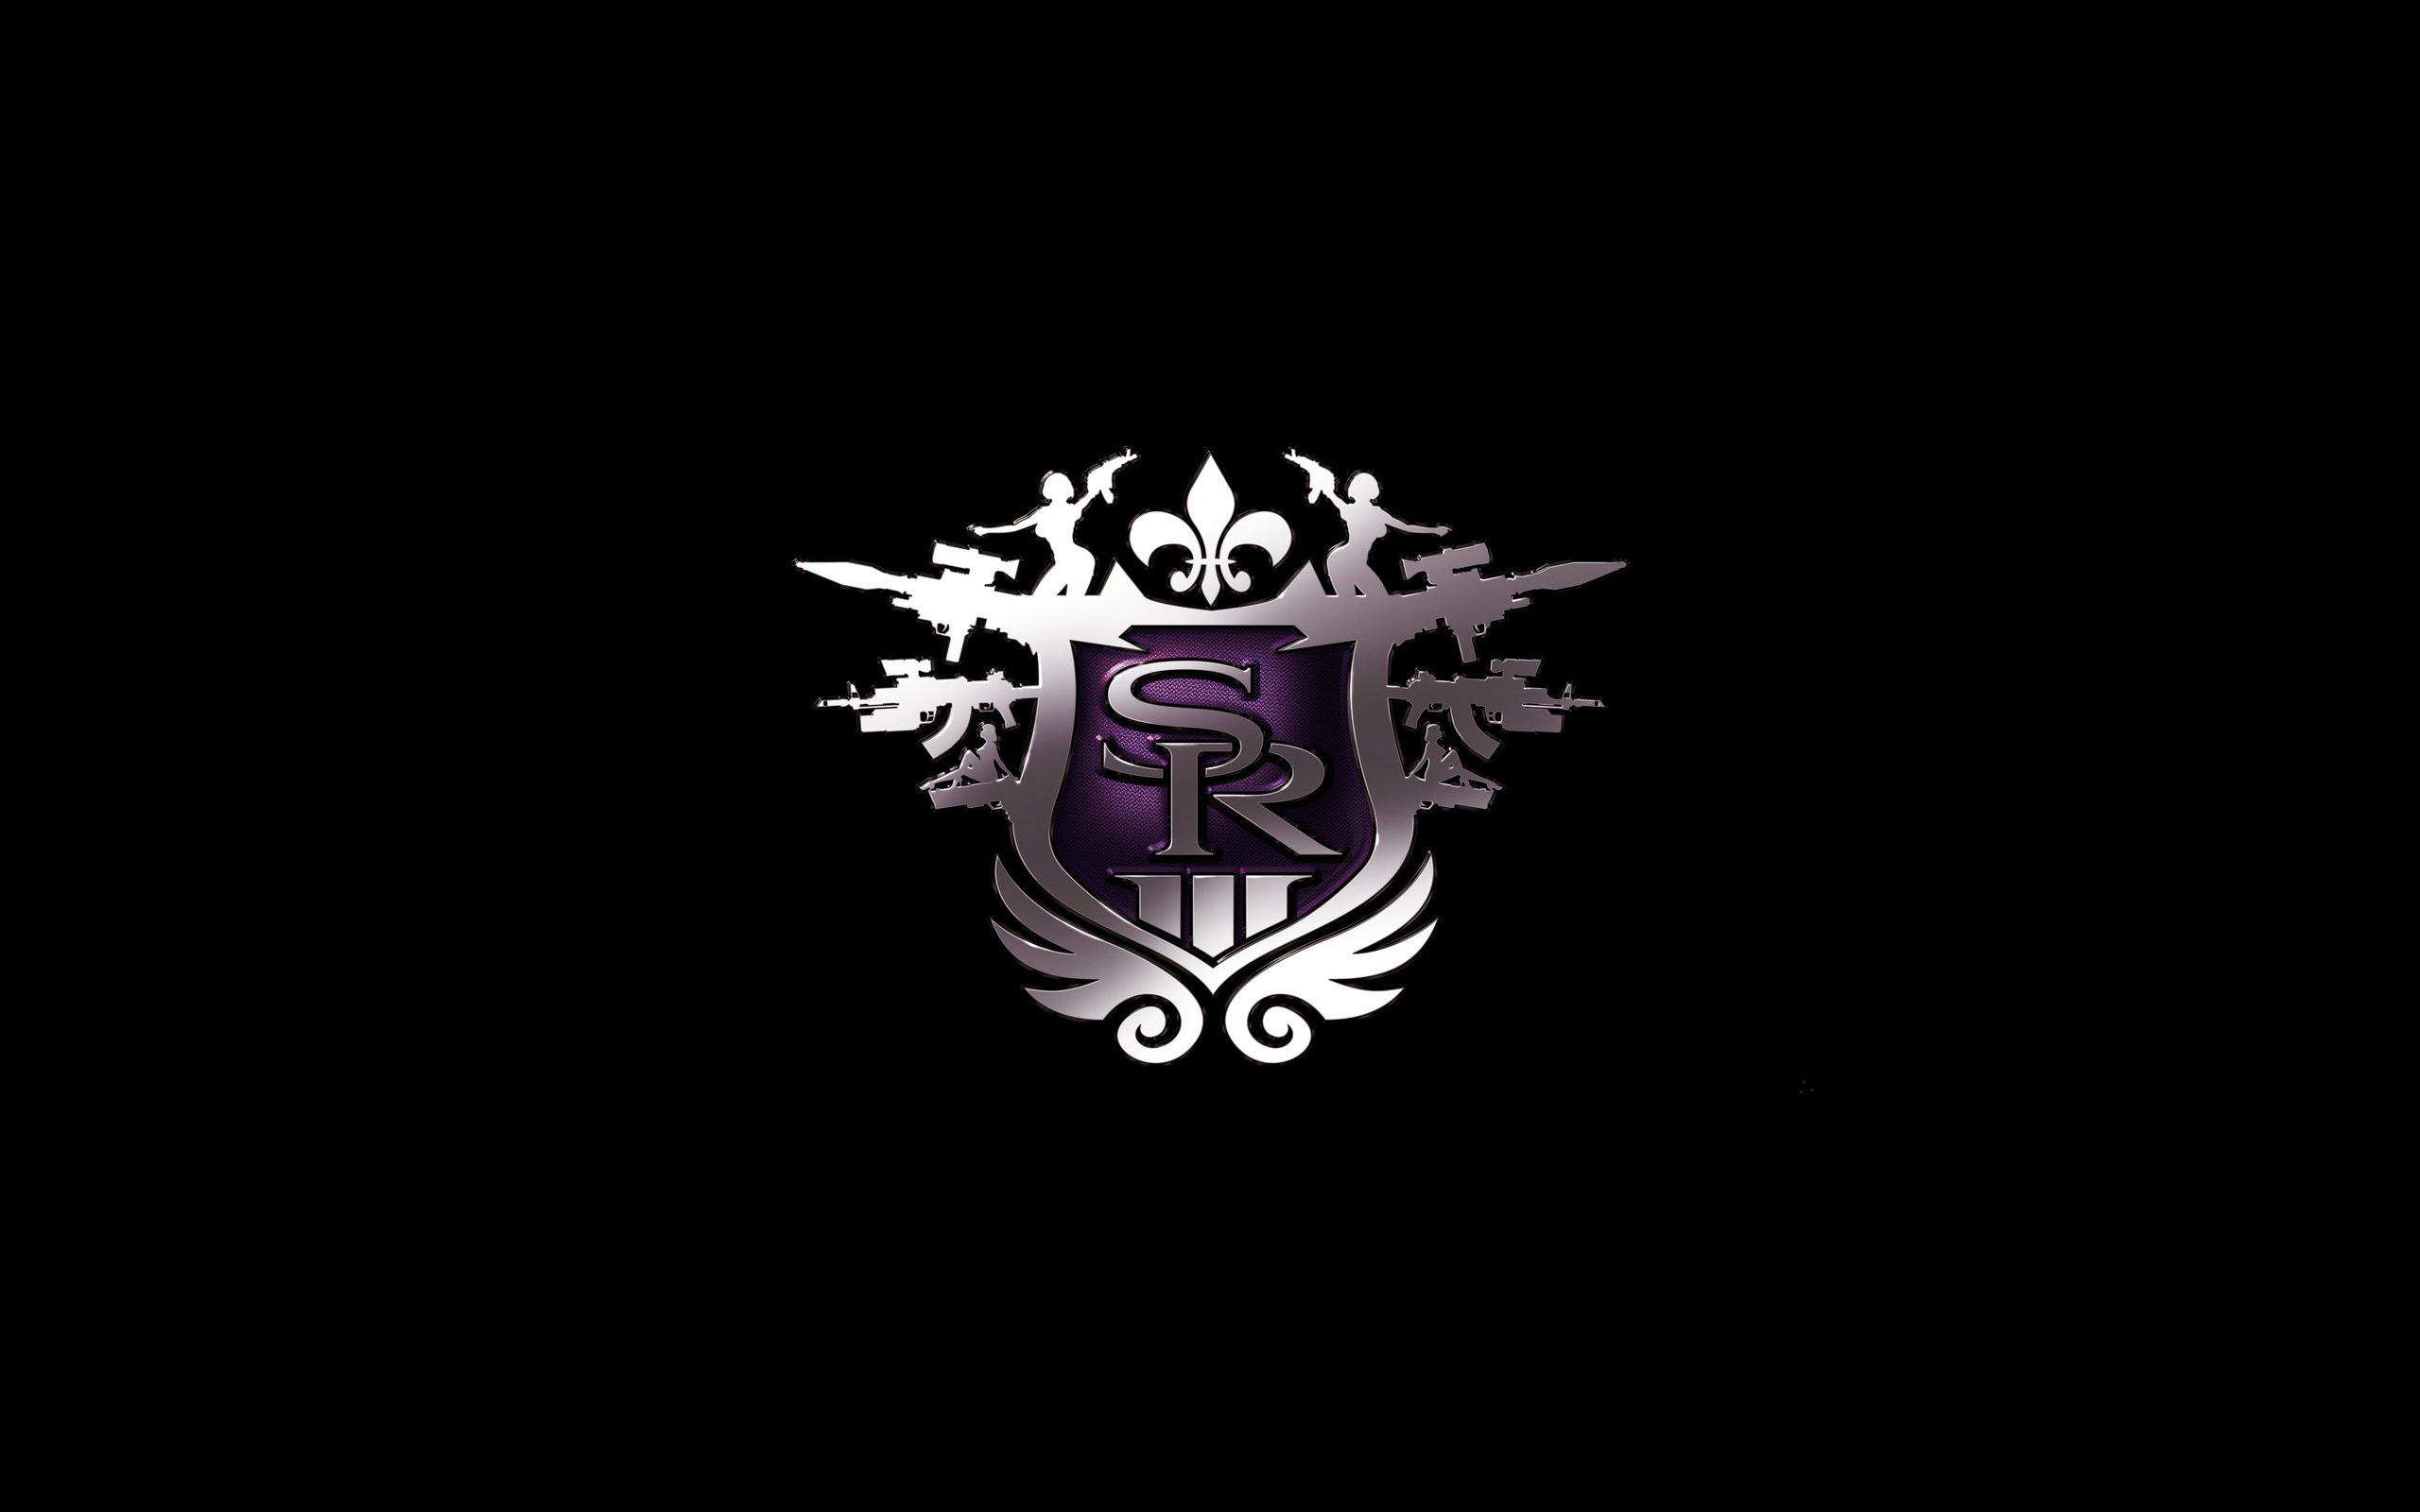 the, third, thq, saints row, logo, purple